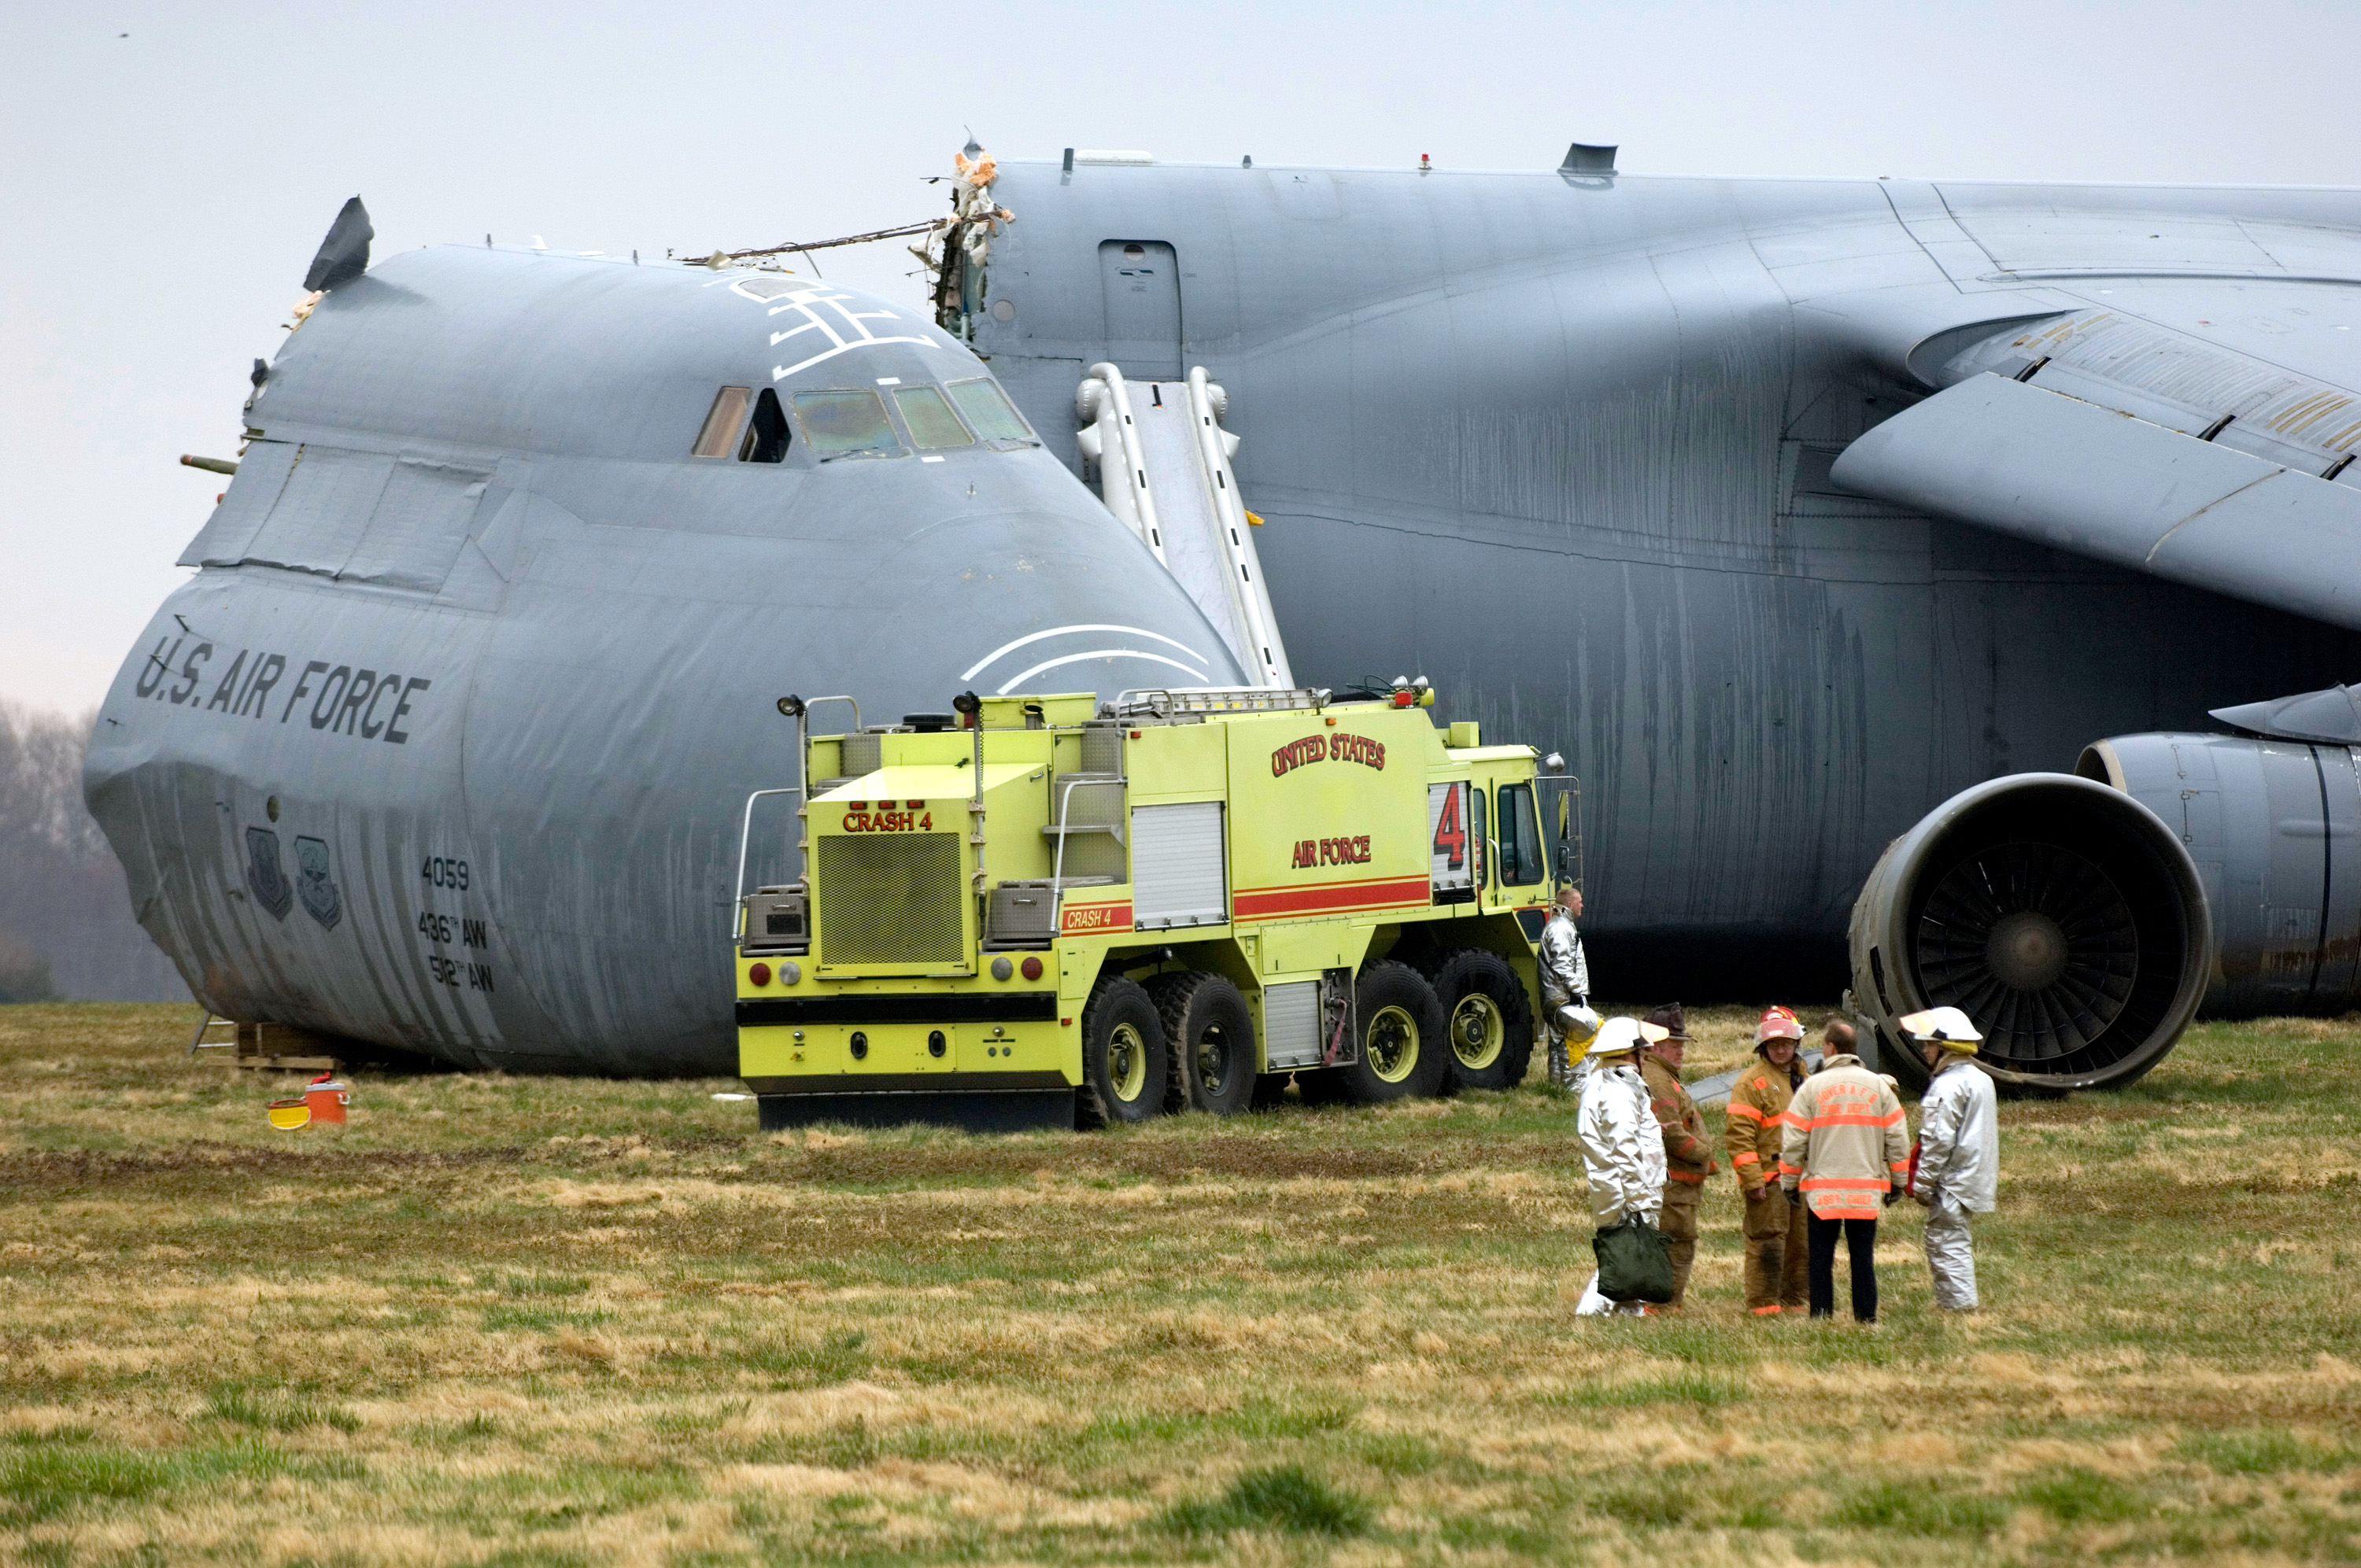 C-5 Galaxy military cargo plane crashes at Dover Air Force